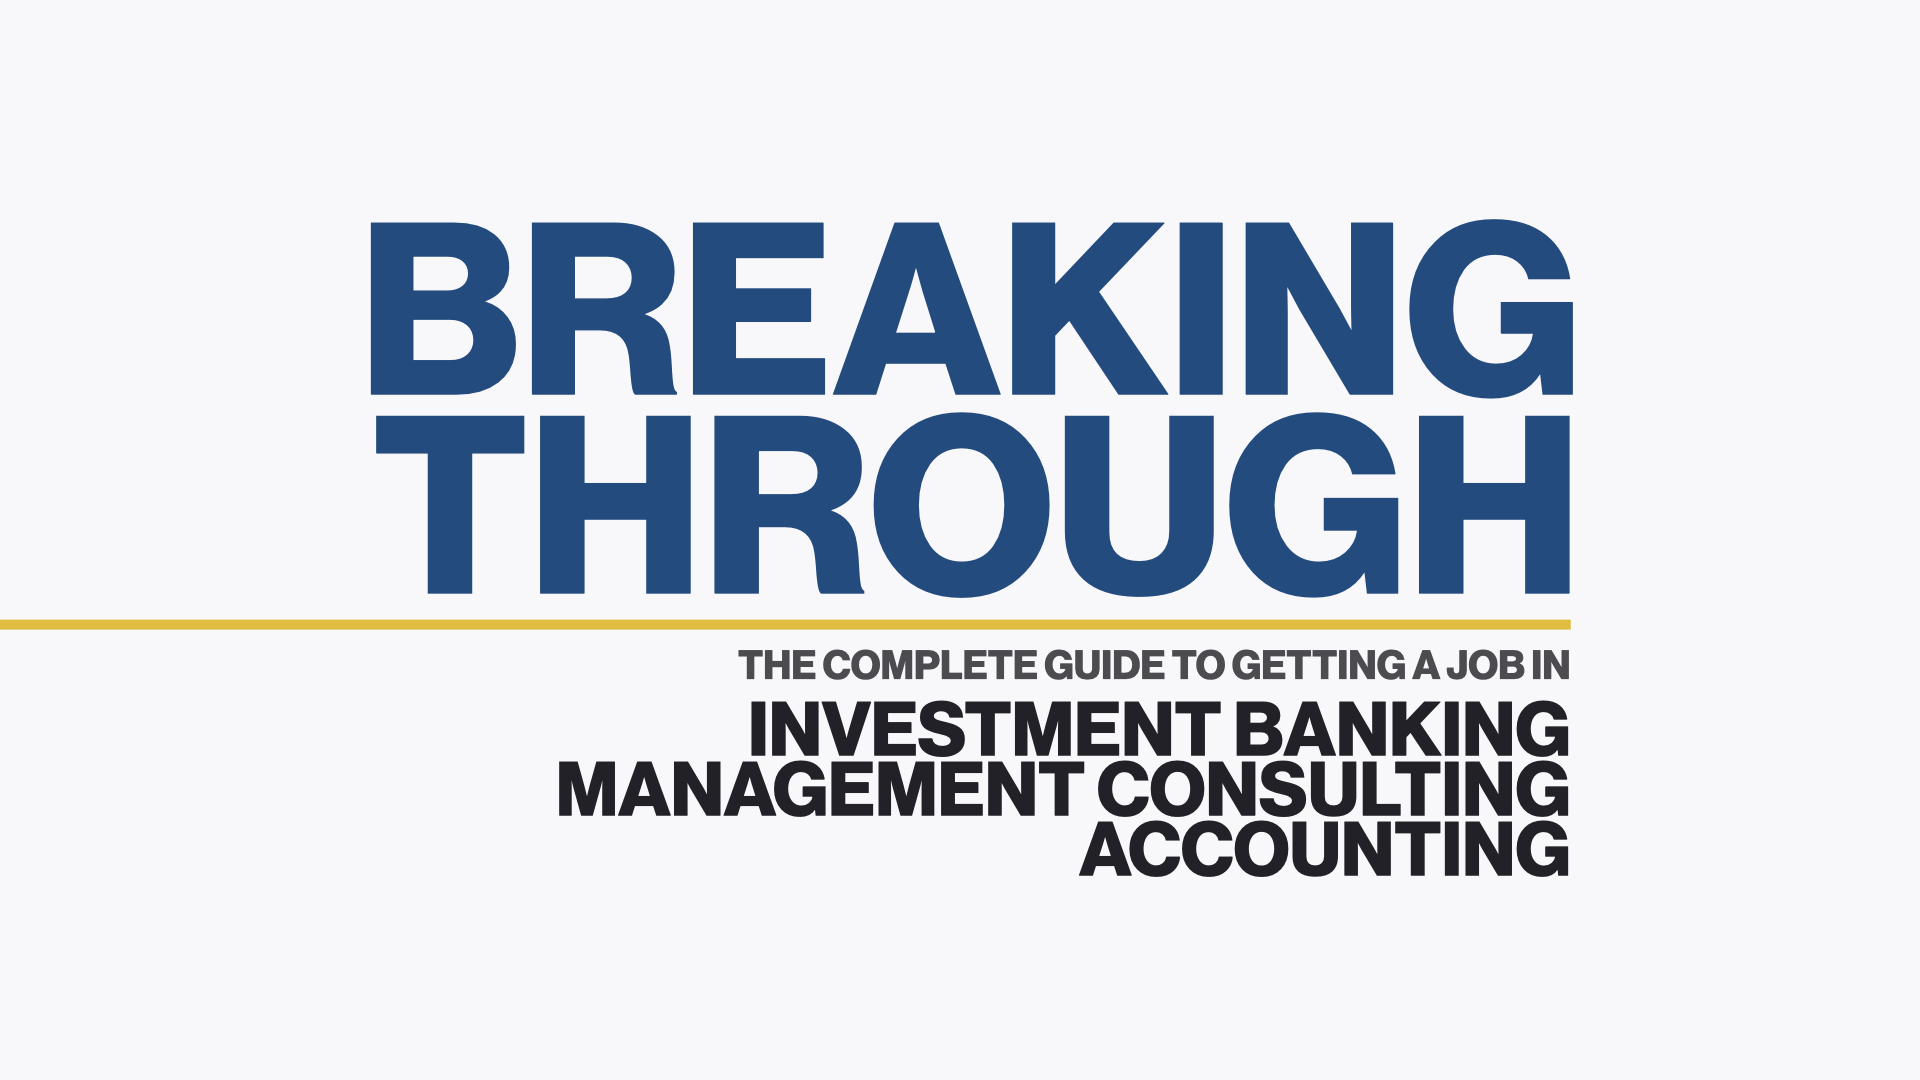 Breaking into Investment Banking, Management Consulting, and Accounting